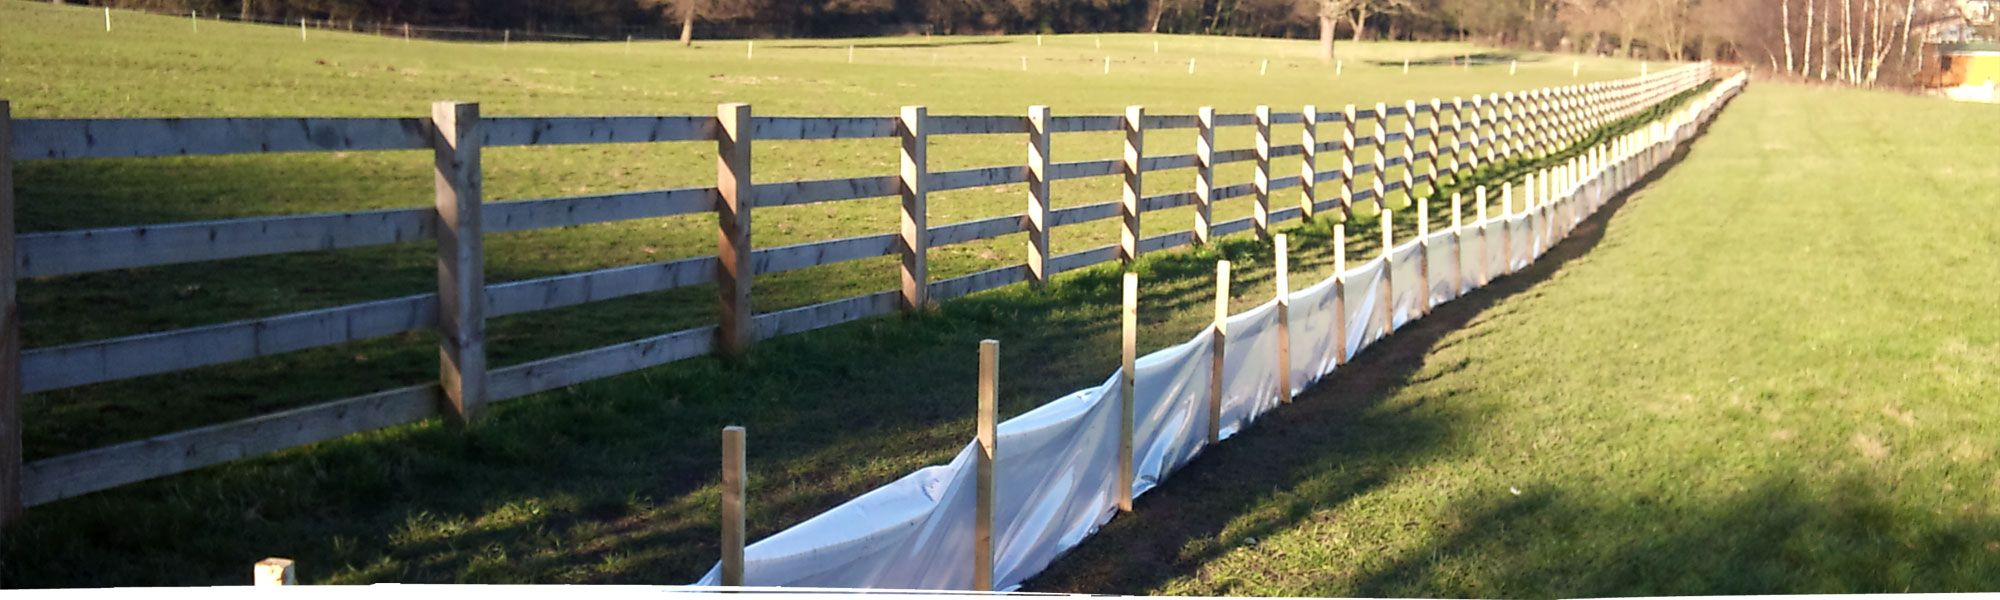 Fence for newt protection in North Wales